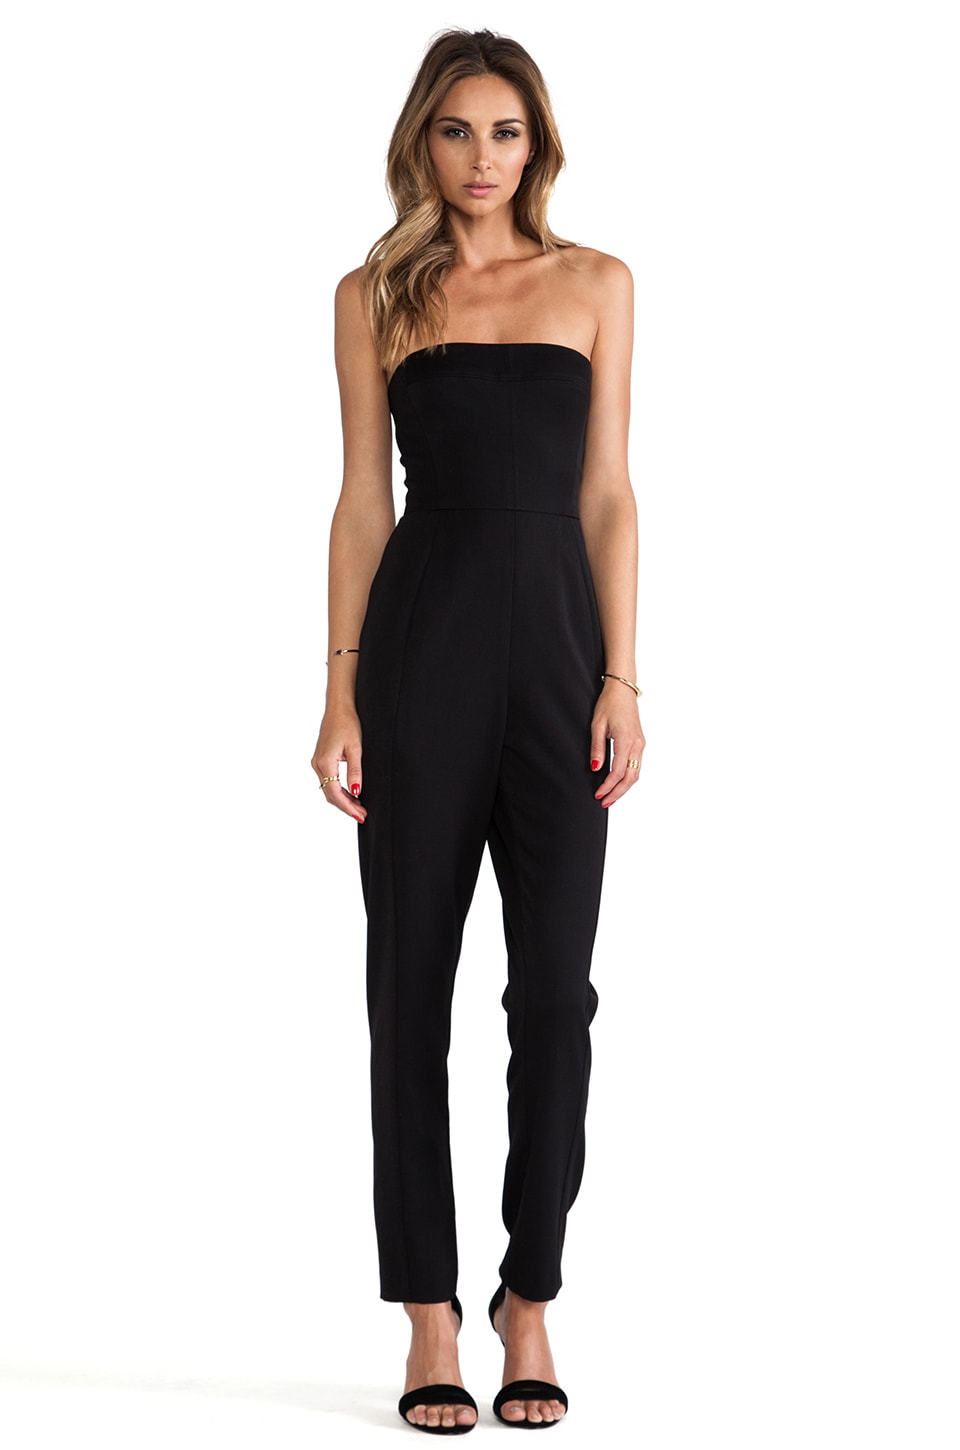 Black Halo Iris Strapless Jumpsuit in Black